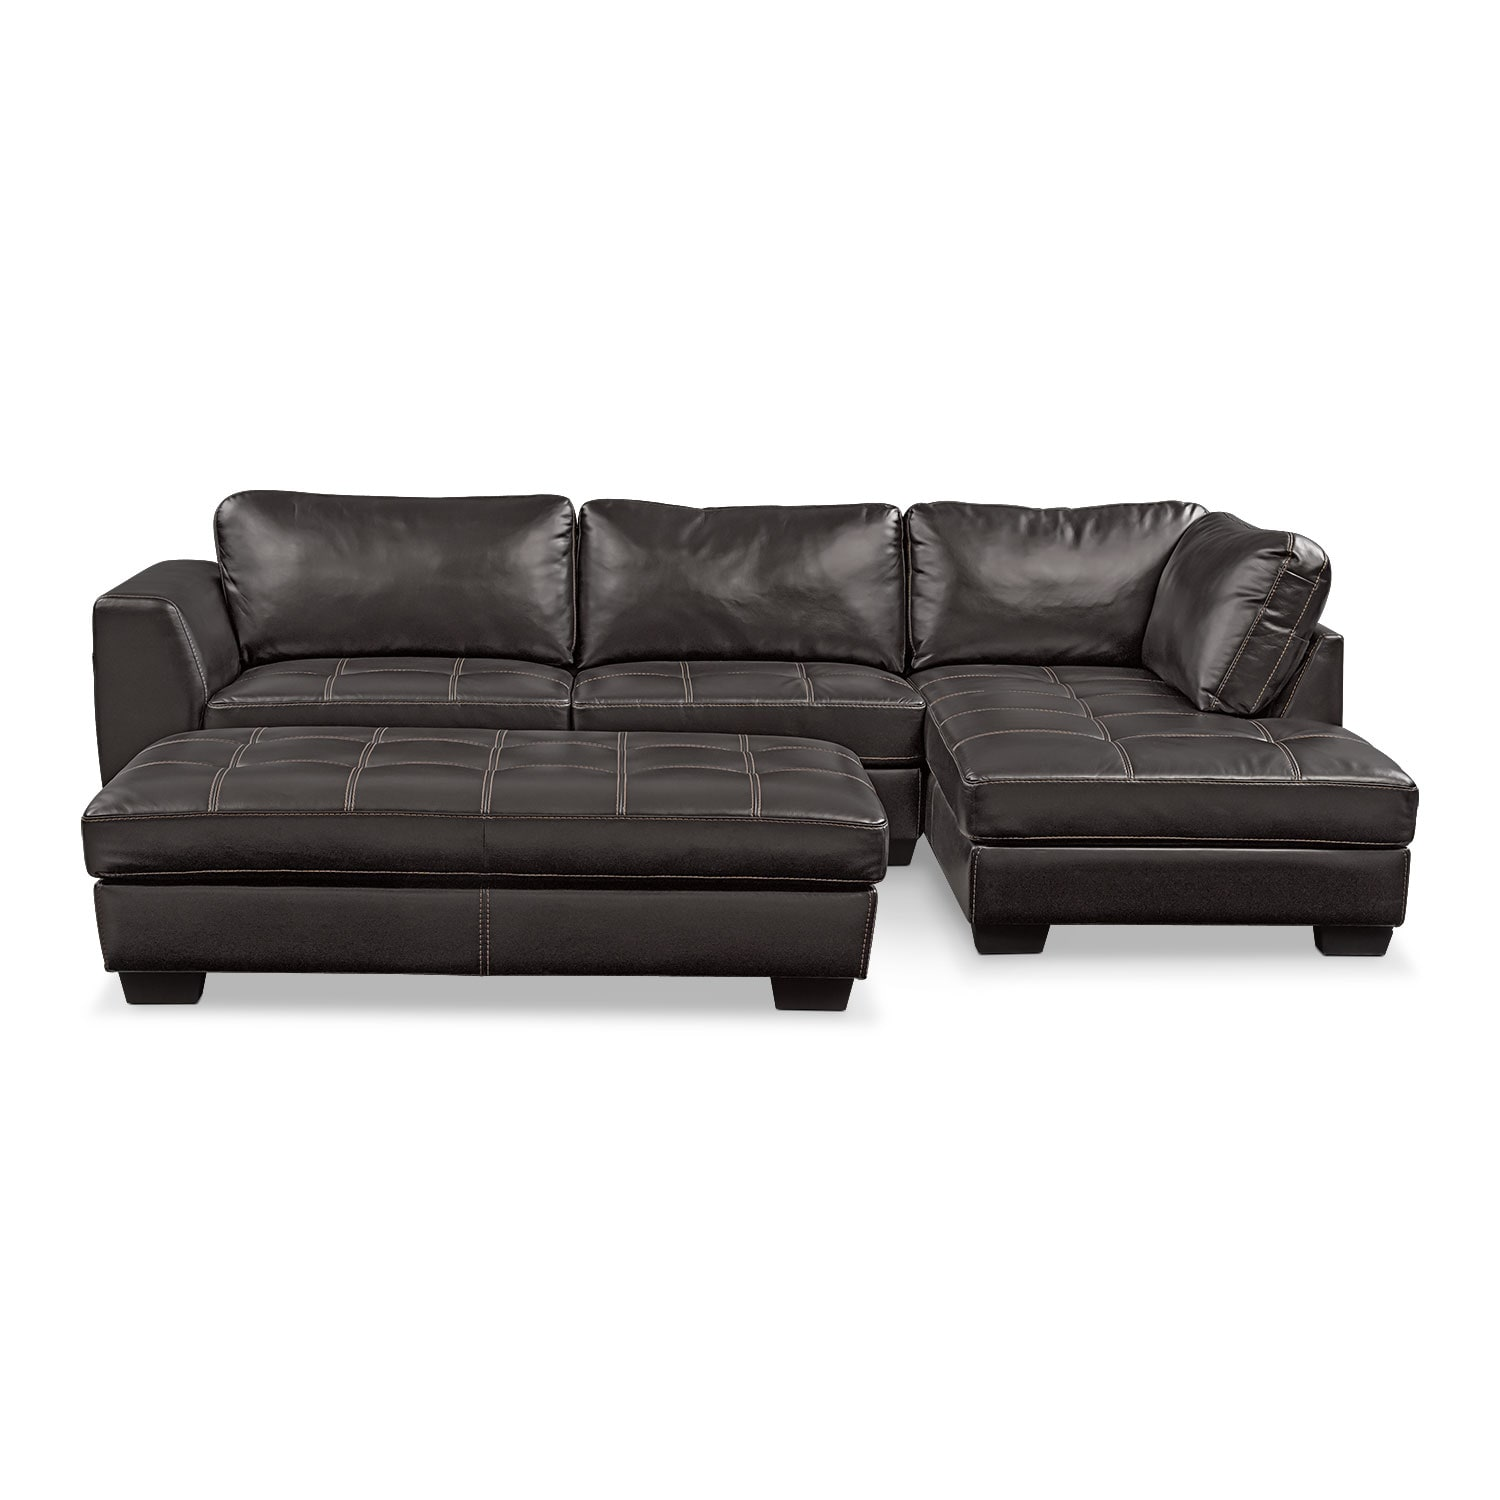 Santana 2-Piece Sectional with Right-Facing Chaise and Cocktail Ottoman Set - Black